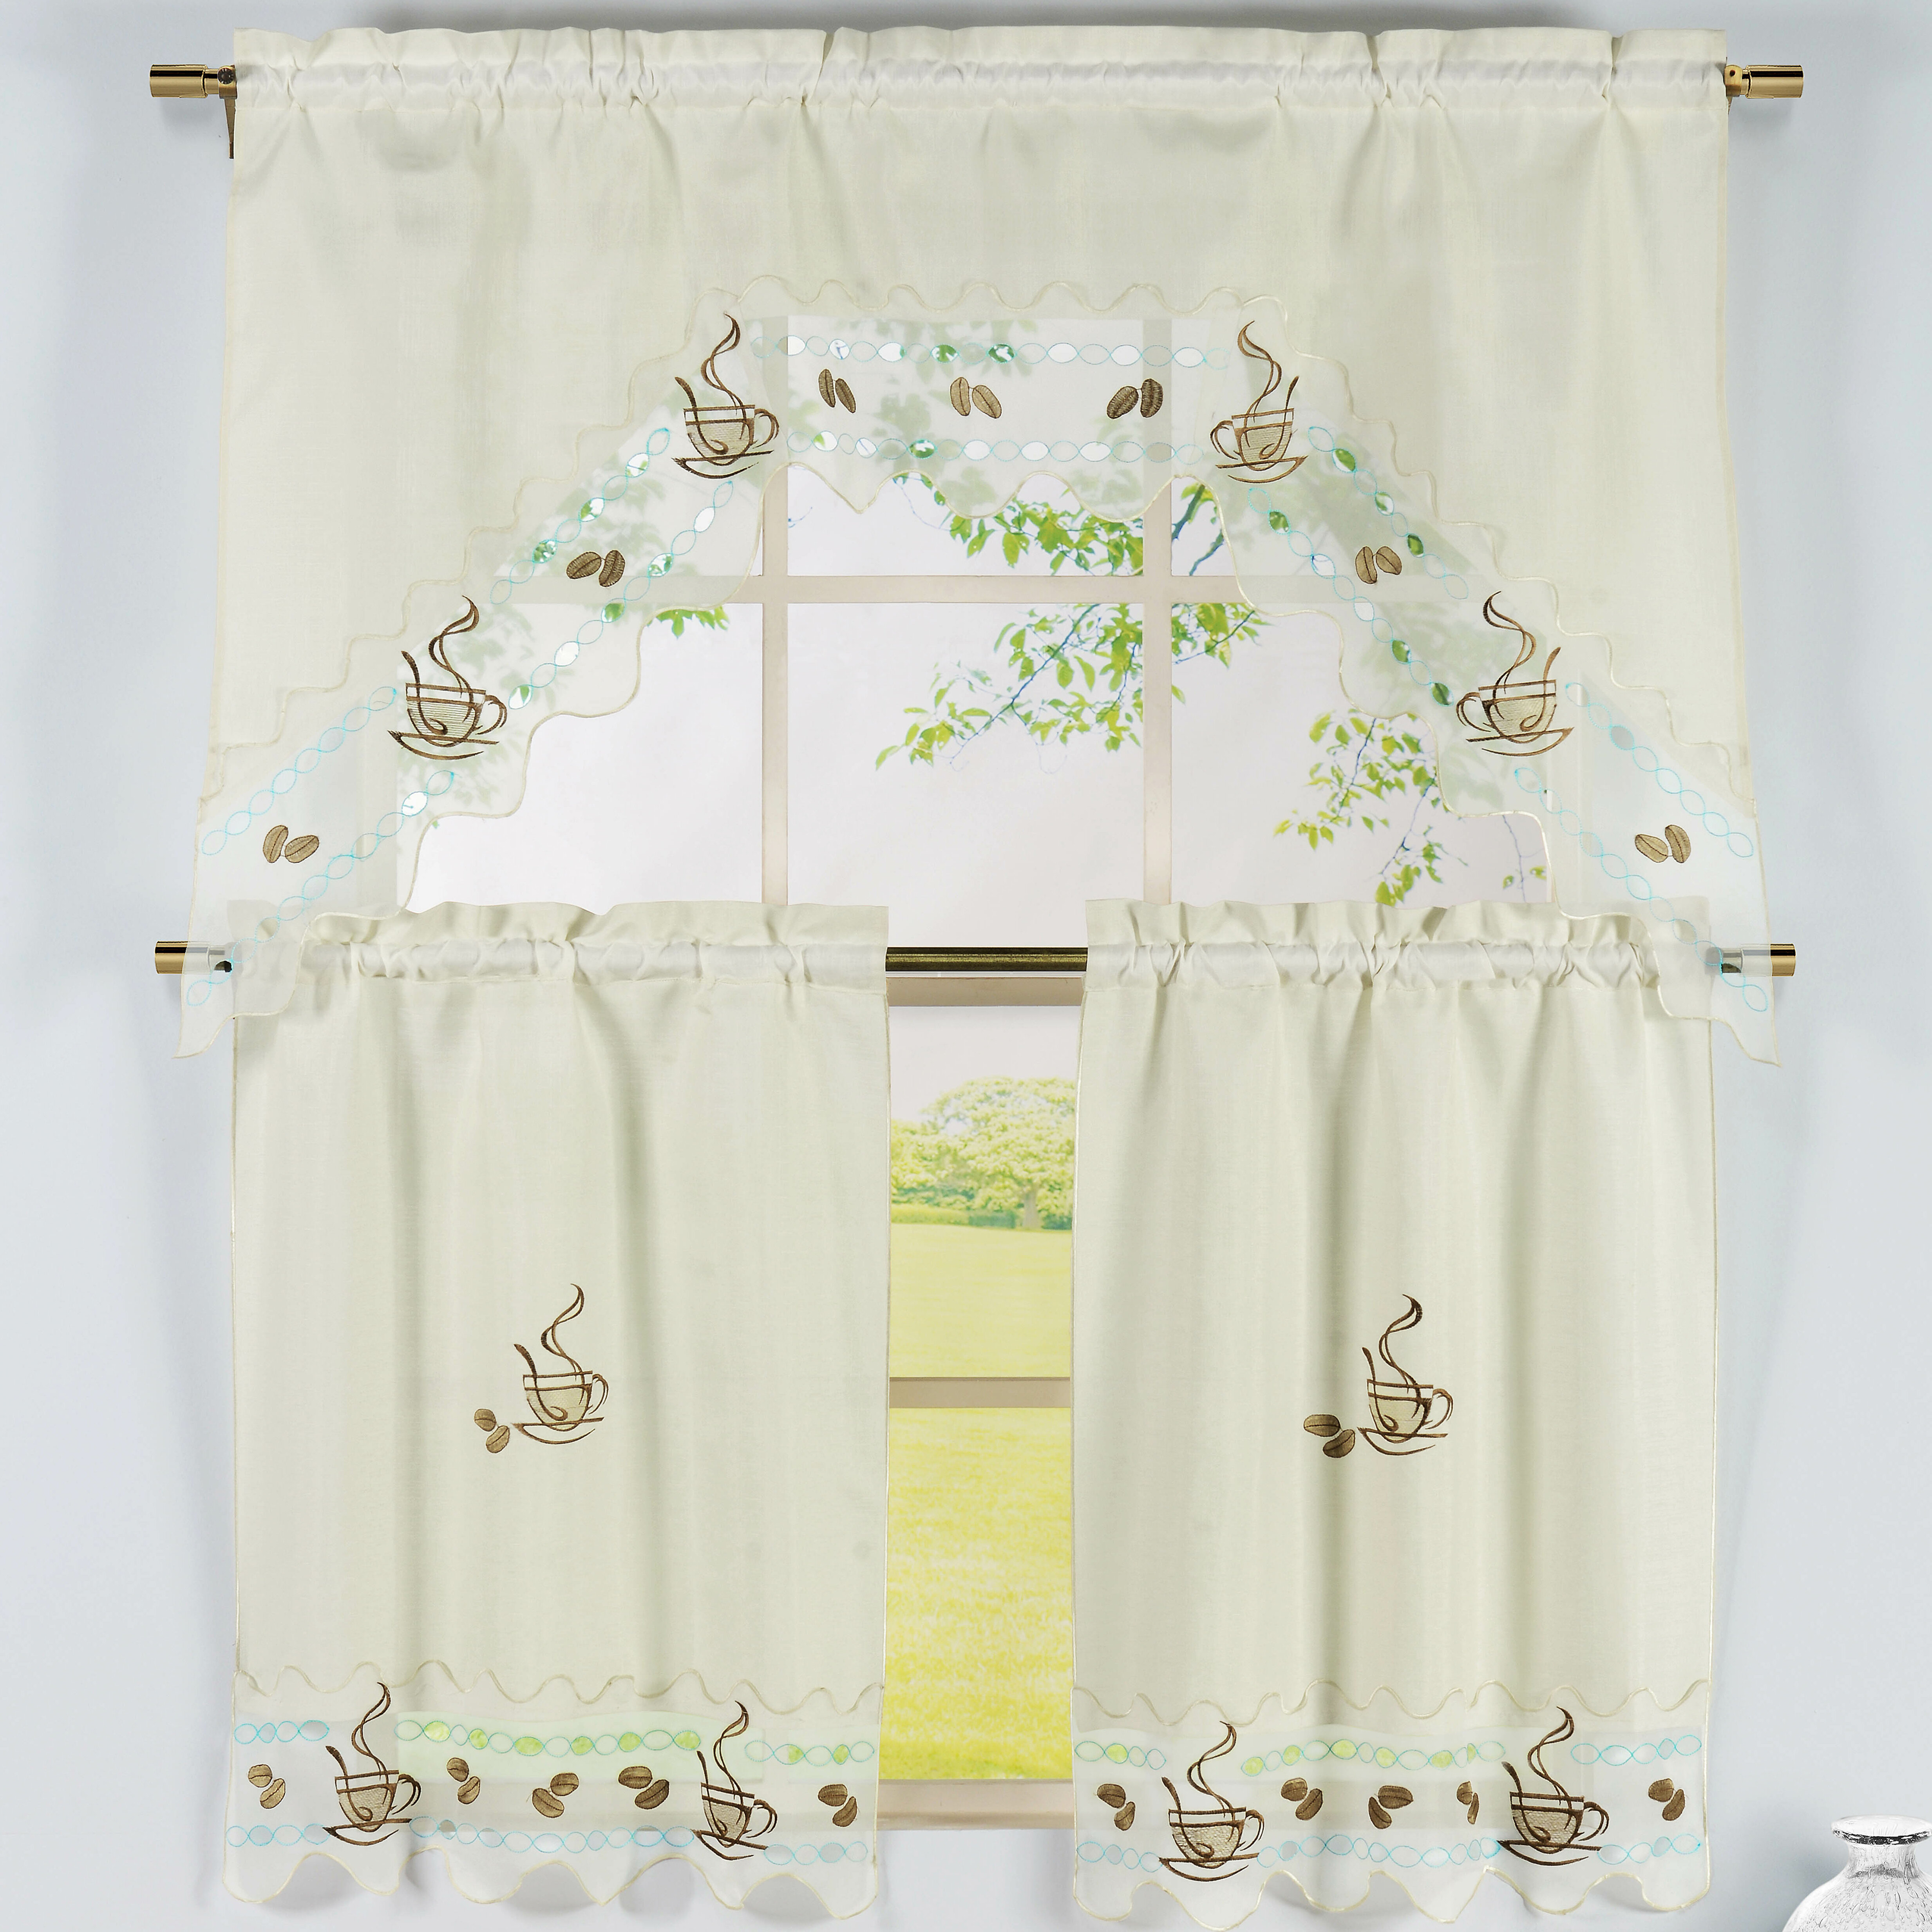 Window Elements Coffee Talk 3 Piece Embroidered Kitchen Valance and ...